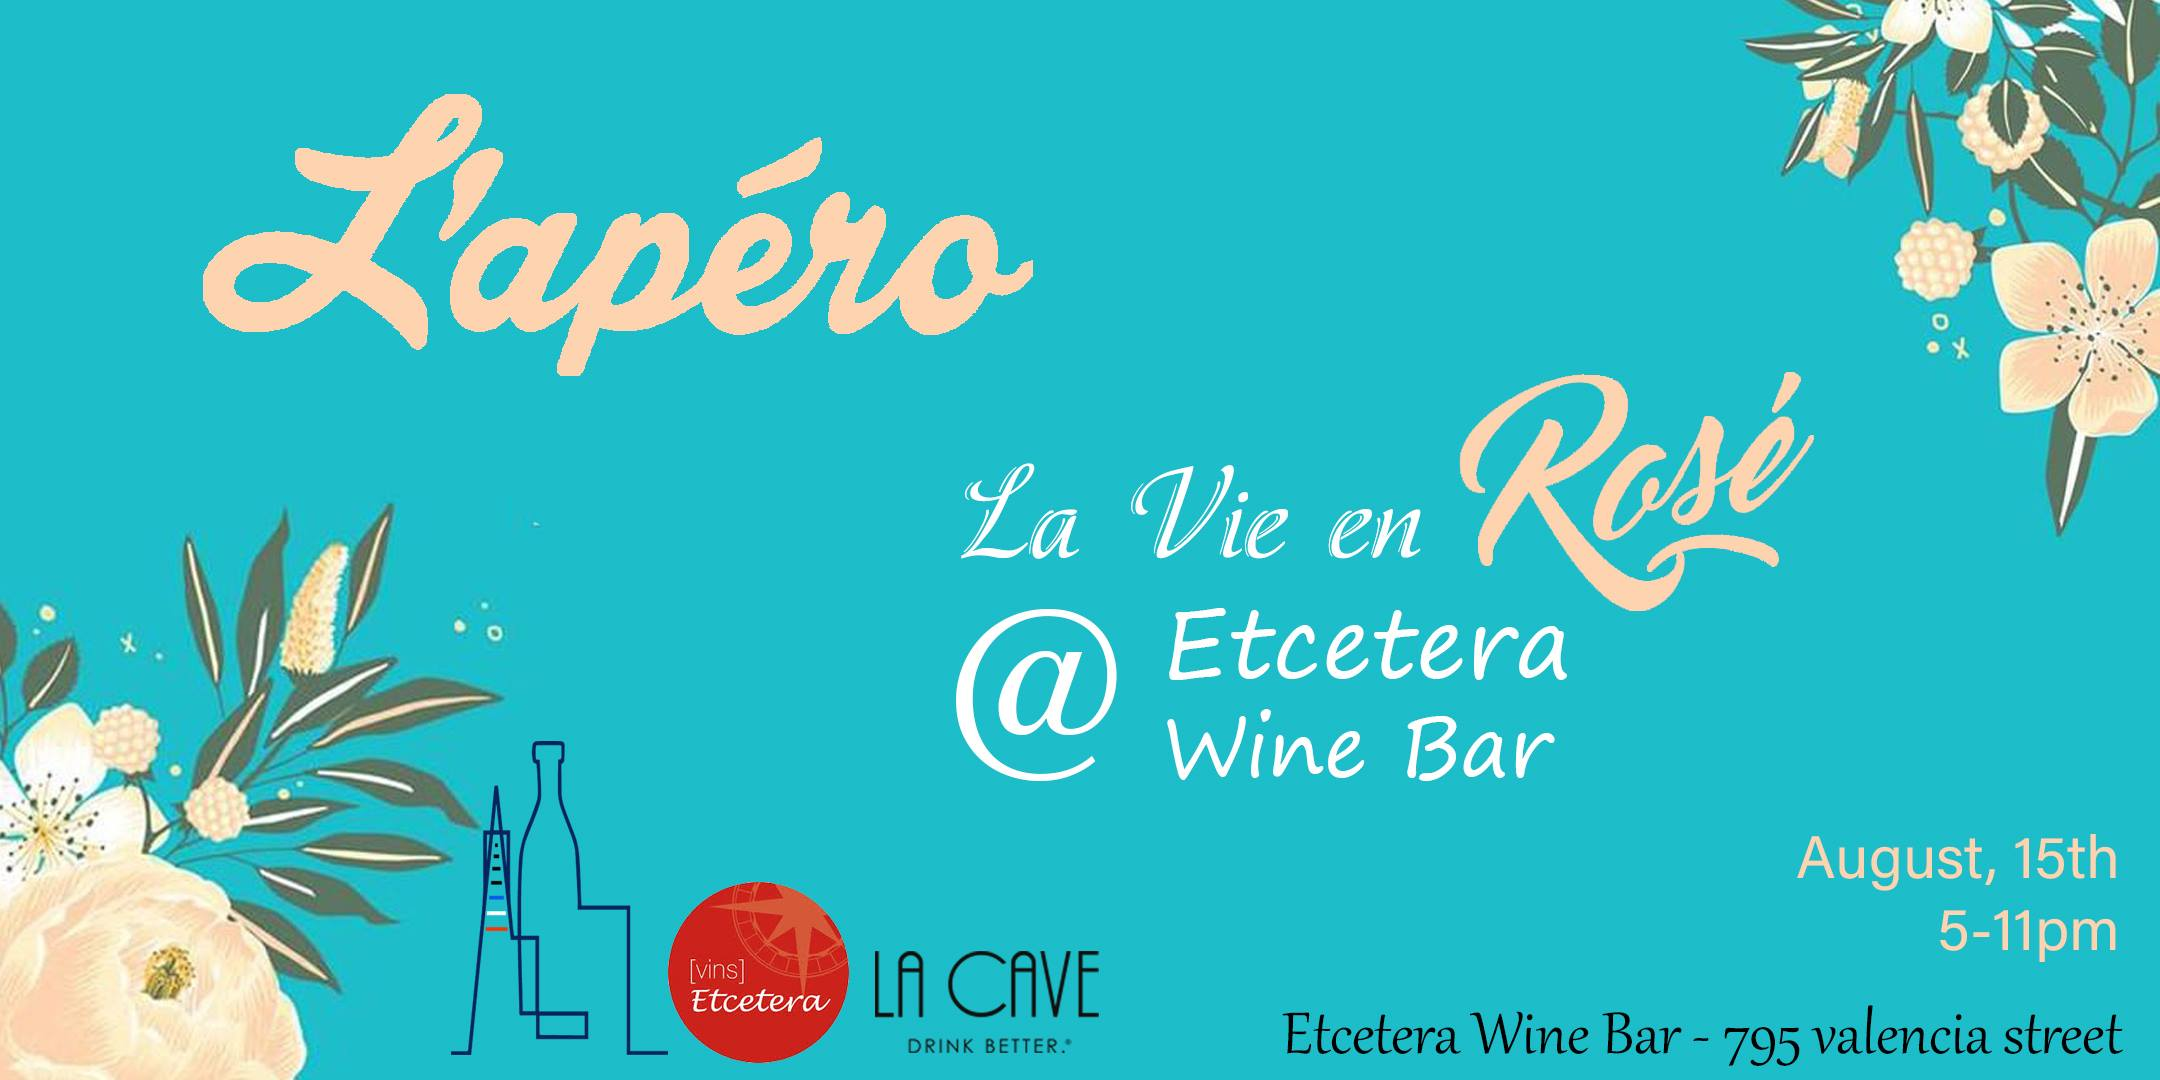 La Vie en Rosé - Thursday, August 15th - 5 - 11pm at Etcetera Wine Bar, 795 Valencia Street, San FranciscoCelebrate Rosé day with L'Apéro at Etcetera Wine Bar, SF!We'll be serving your favorite rosés, including Domaine de Marchandise and Domaine Roche Redonne. Tickets are $10 and include a glass of rosé!As per L'Apéro tradition, join us dressed up in